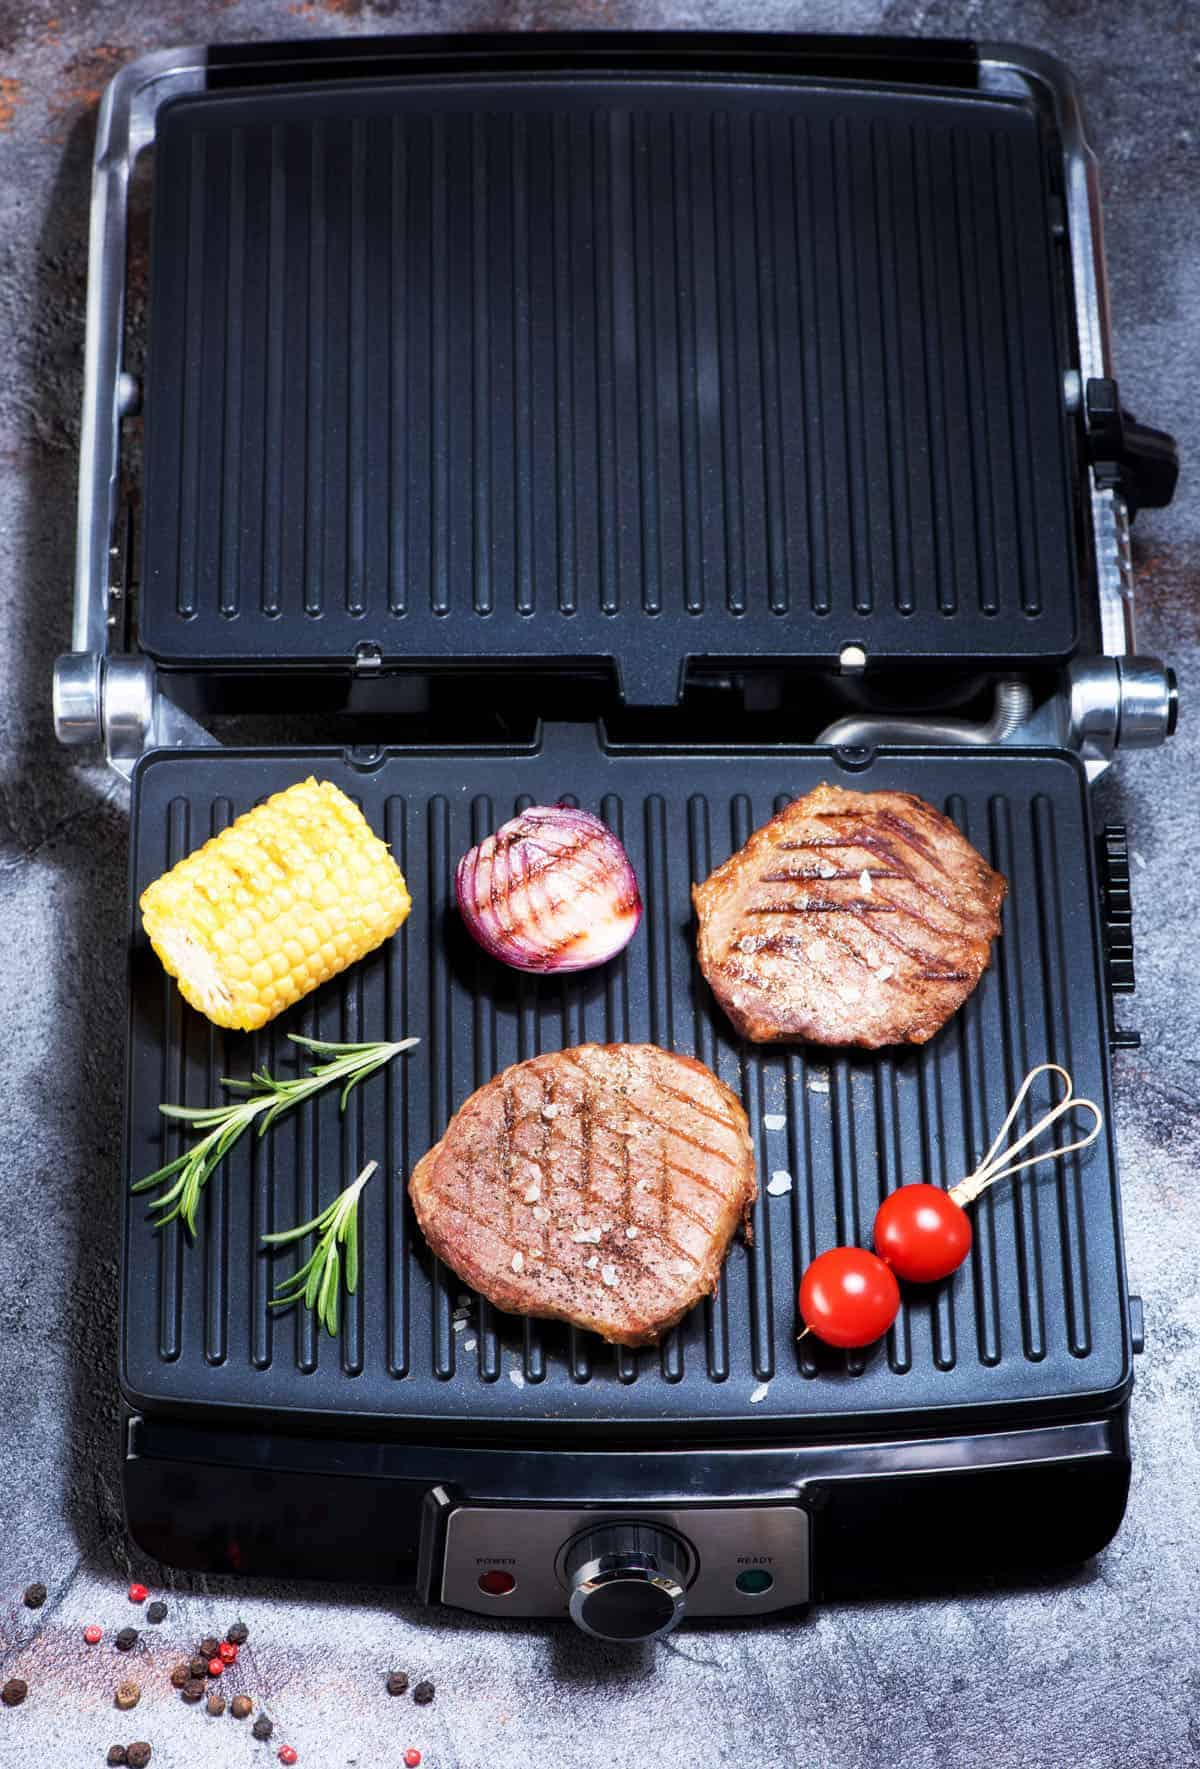 burgers and sausages on a grill pan